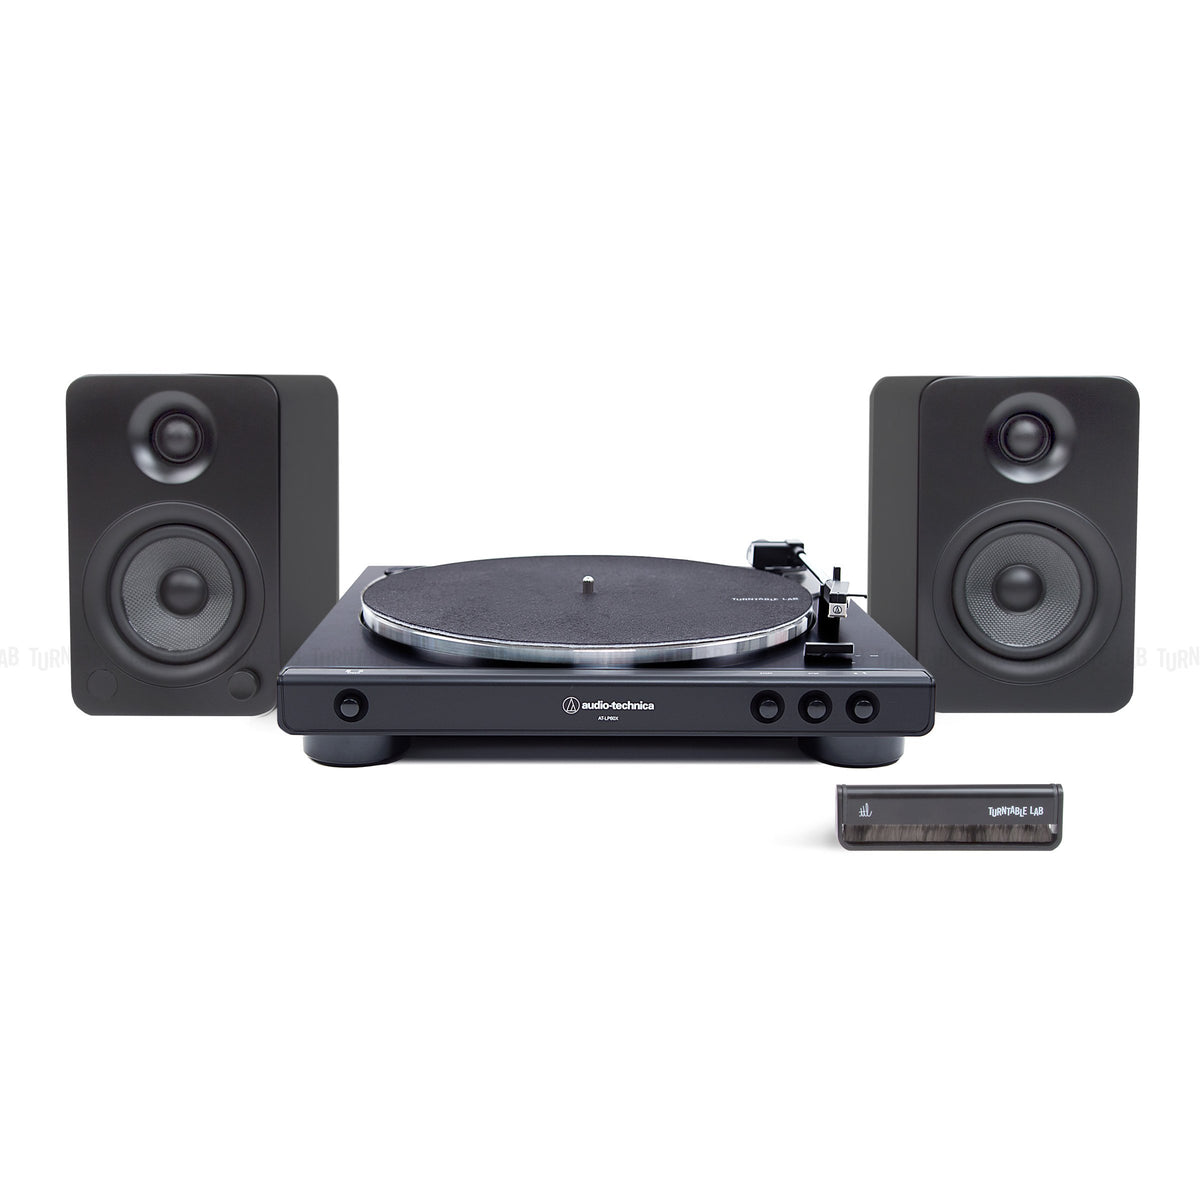 Audio-Technica: AT-LP60X / Kanto YU4 / Turntable Package